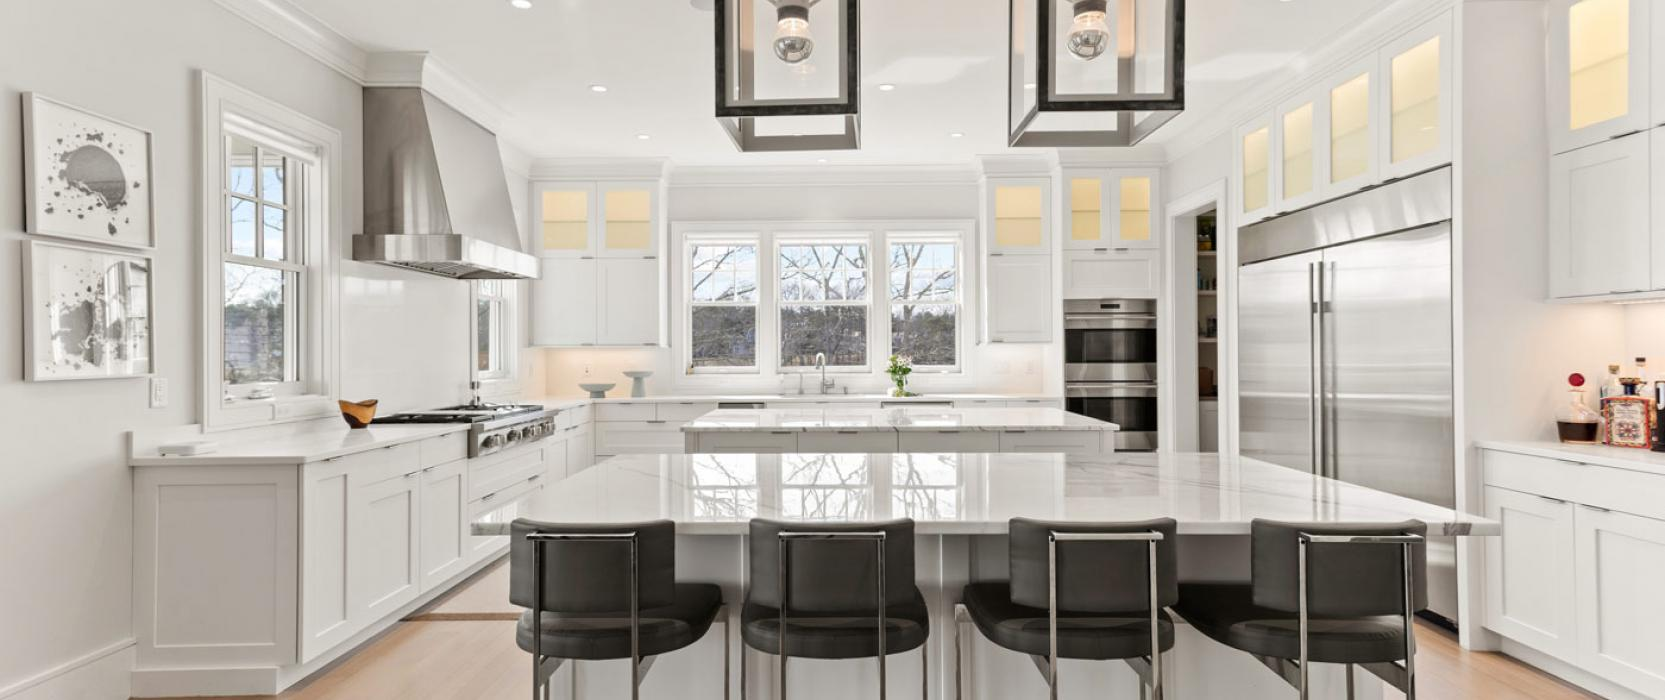 modern white kitchen with 2 big stone islands in the center